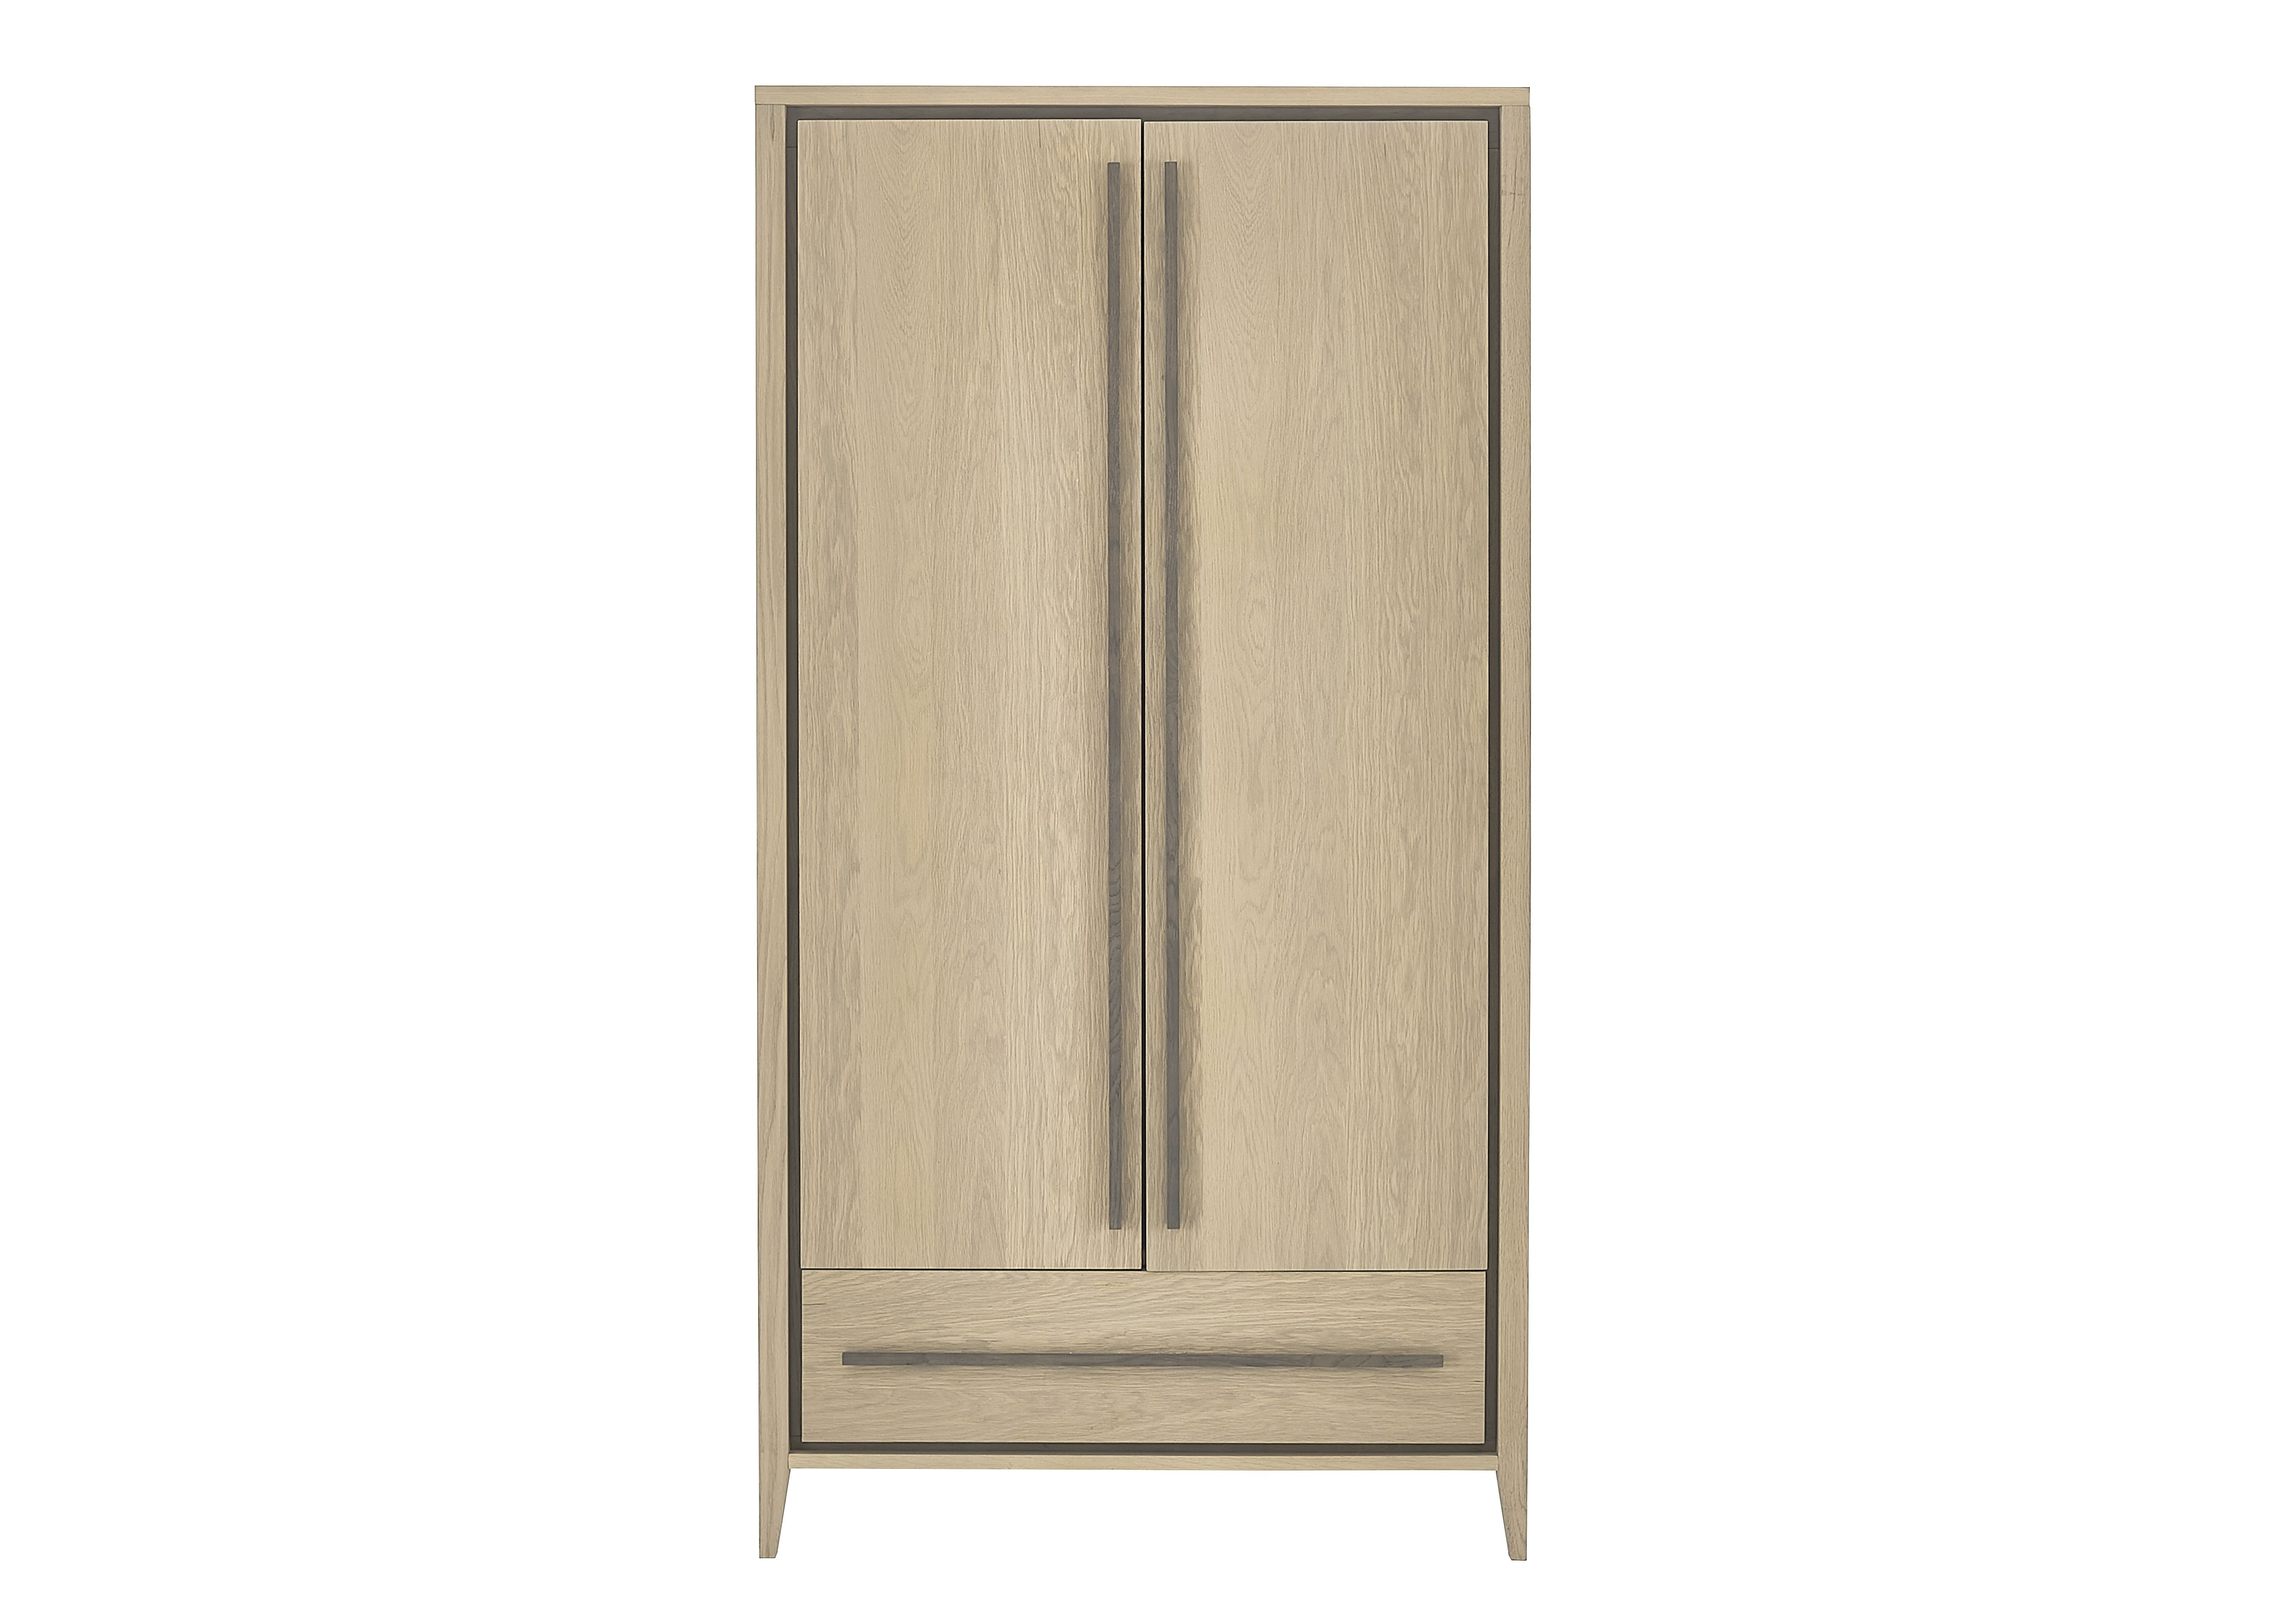 Preferred Wardrobes For Sale Aberdeen Cheap In Bournemouth Double Bristol In Cheap Double Wardrobes (View 8 of 15)